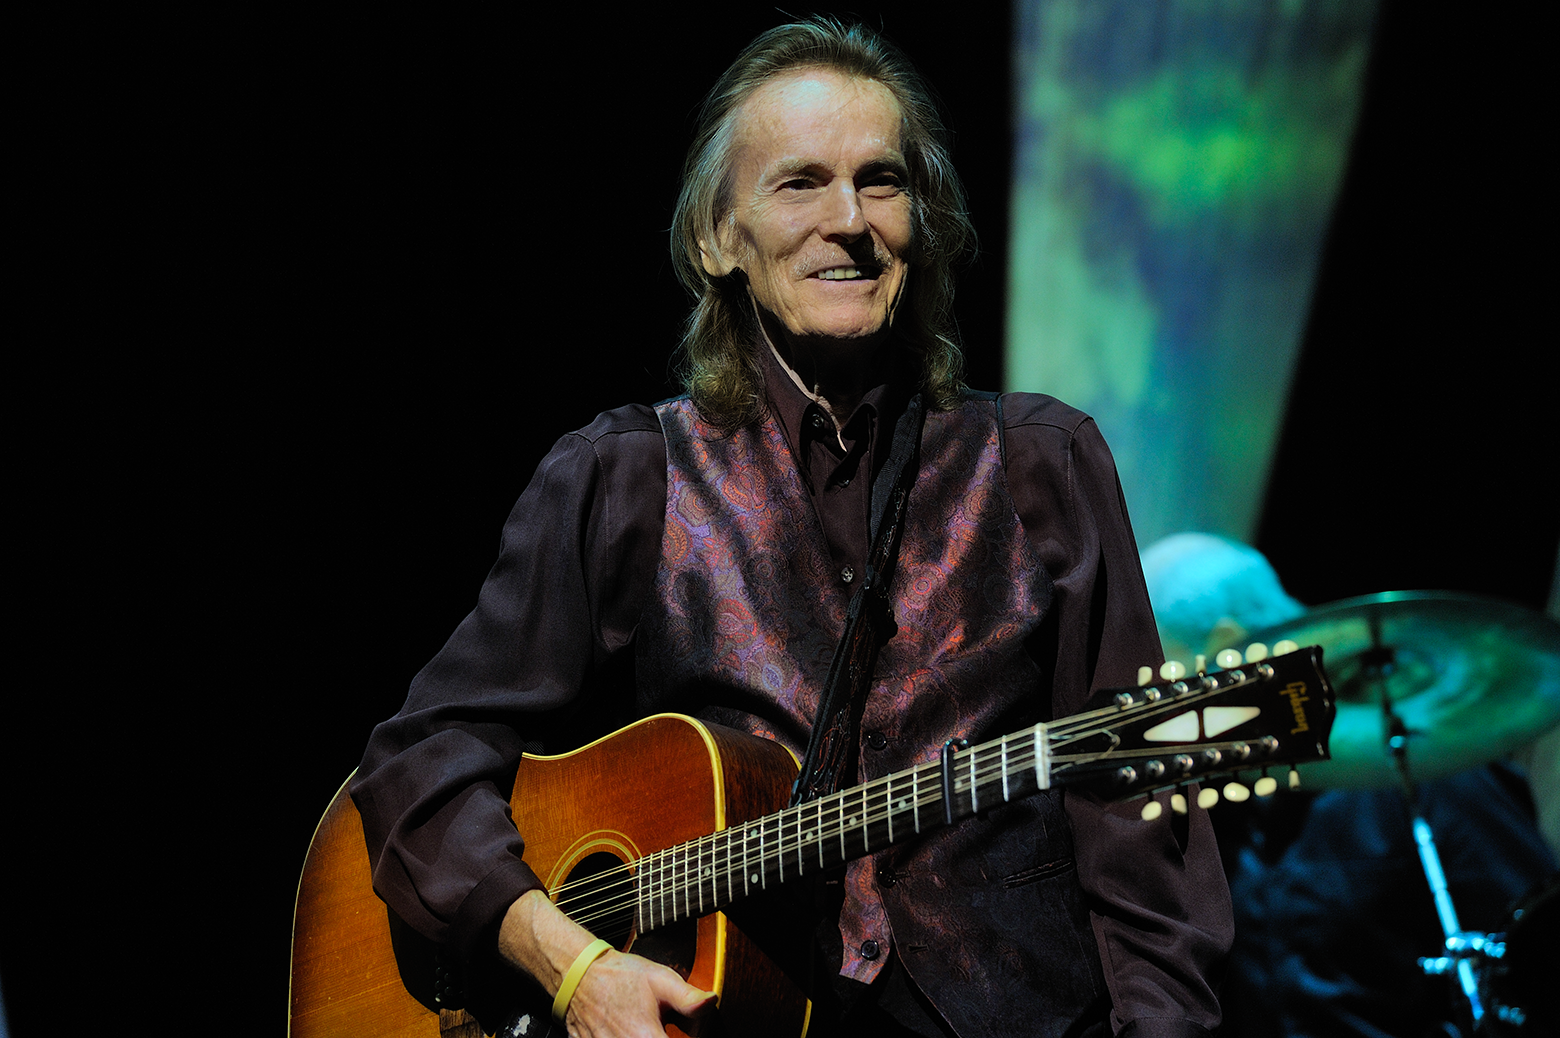 """Gordon Lightfoot in Concert: """"The Legend Lives On"""" 5/13/17 at 8PM at Tarrytown Music Hall"""